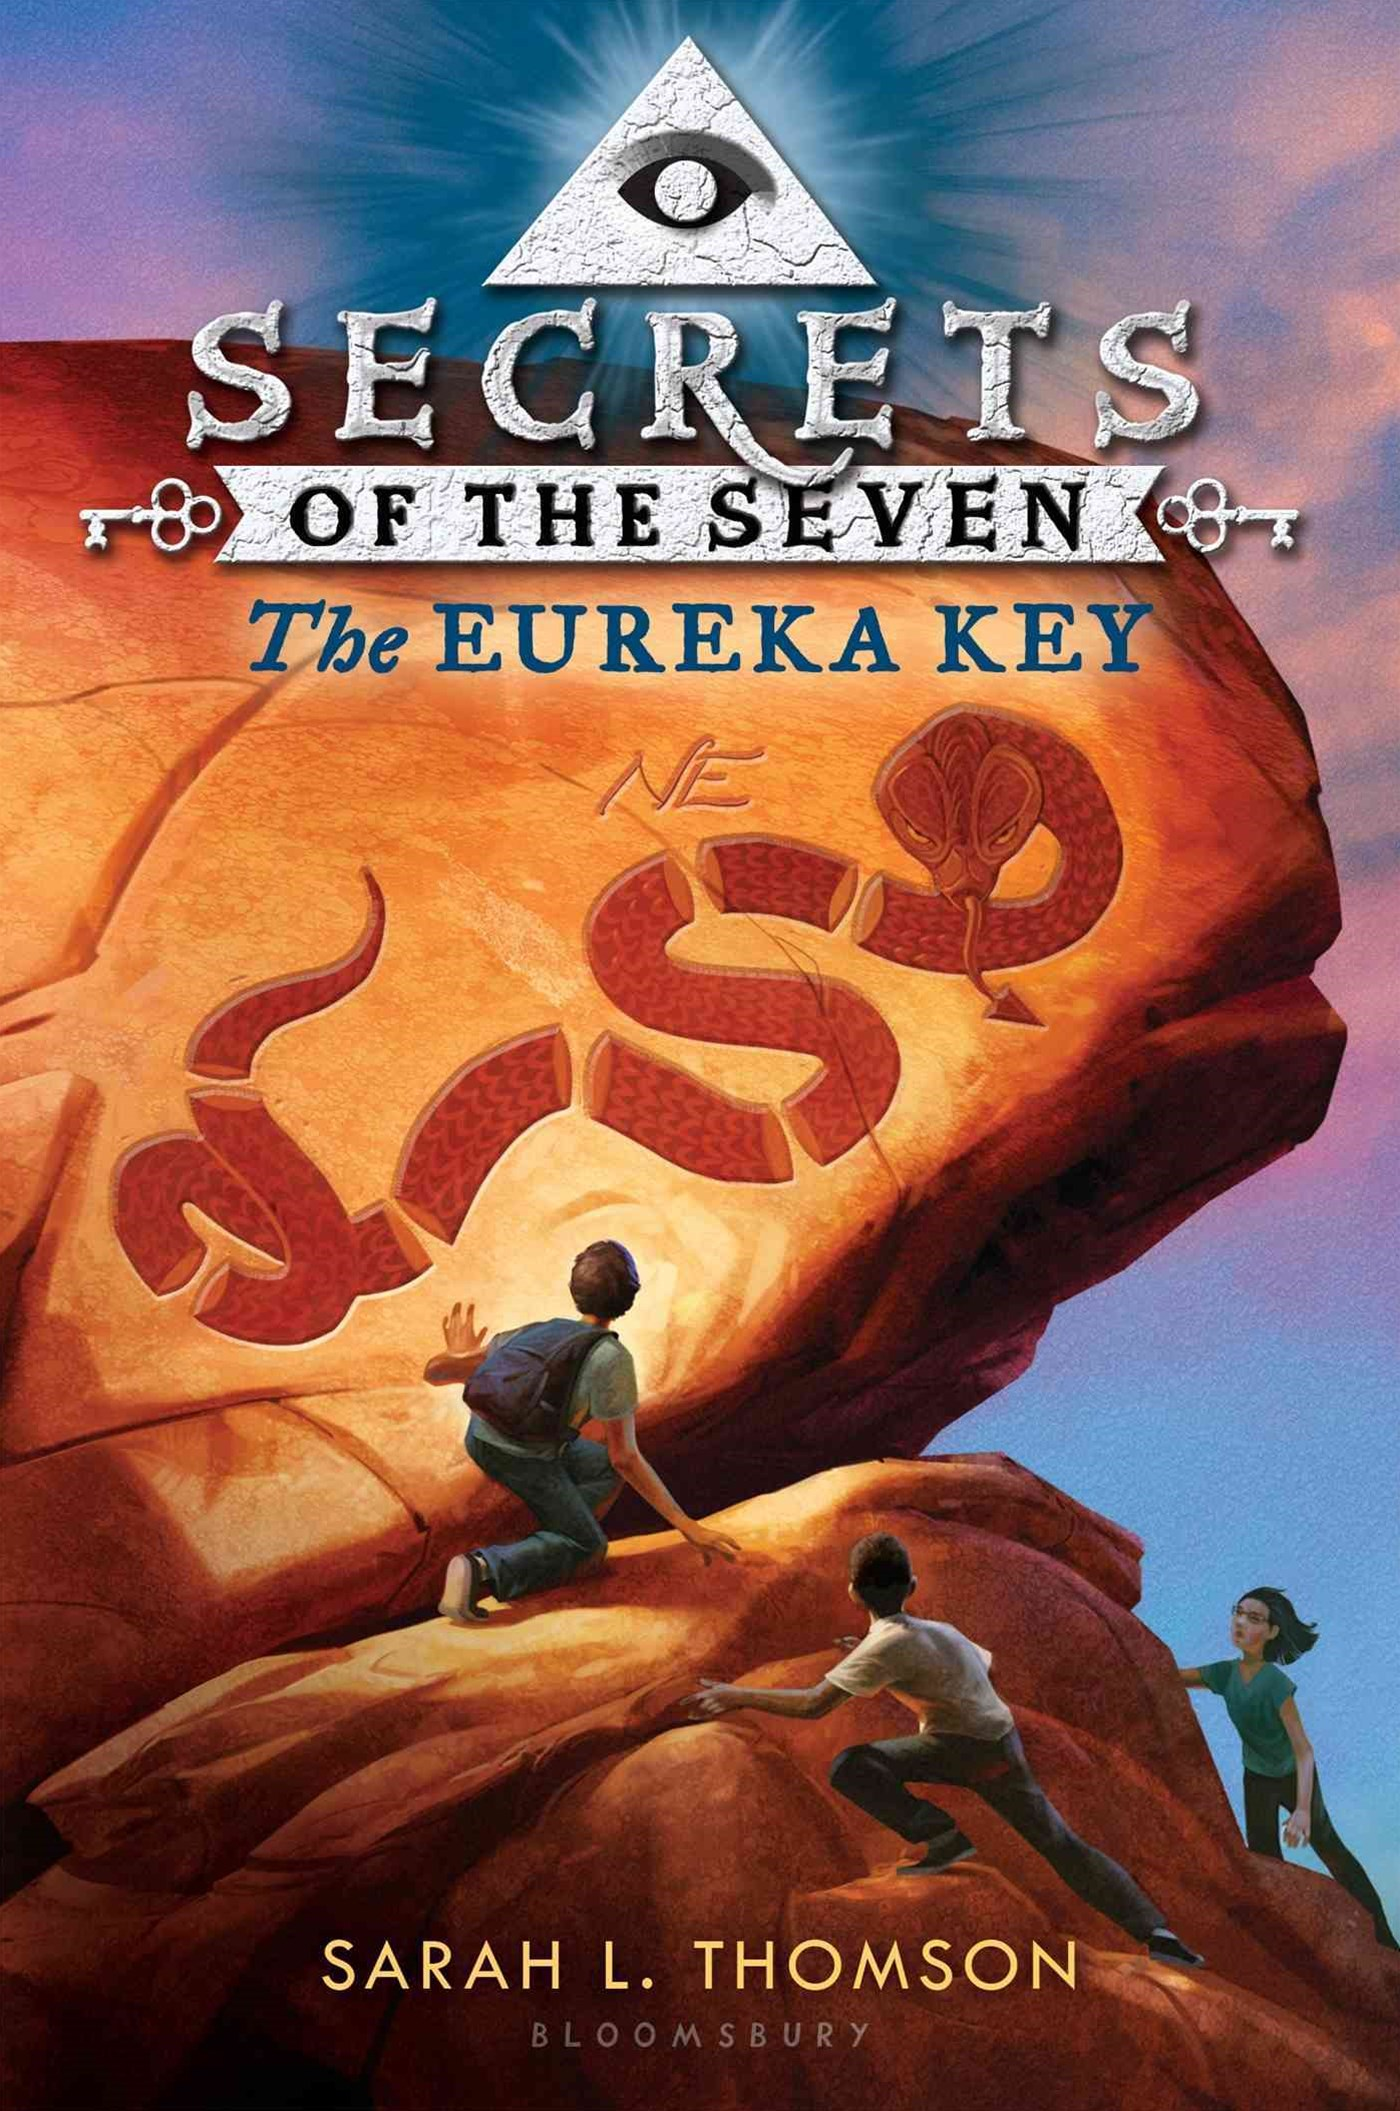 The Eureka Key